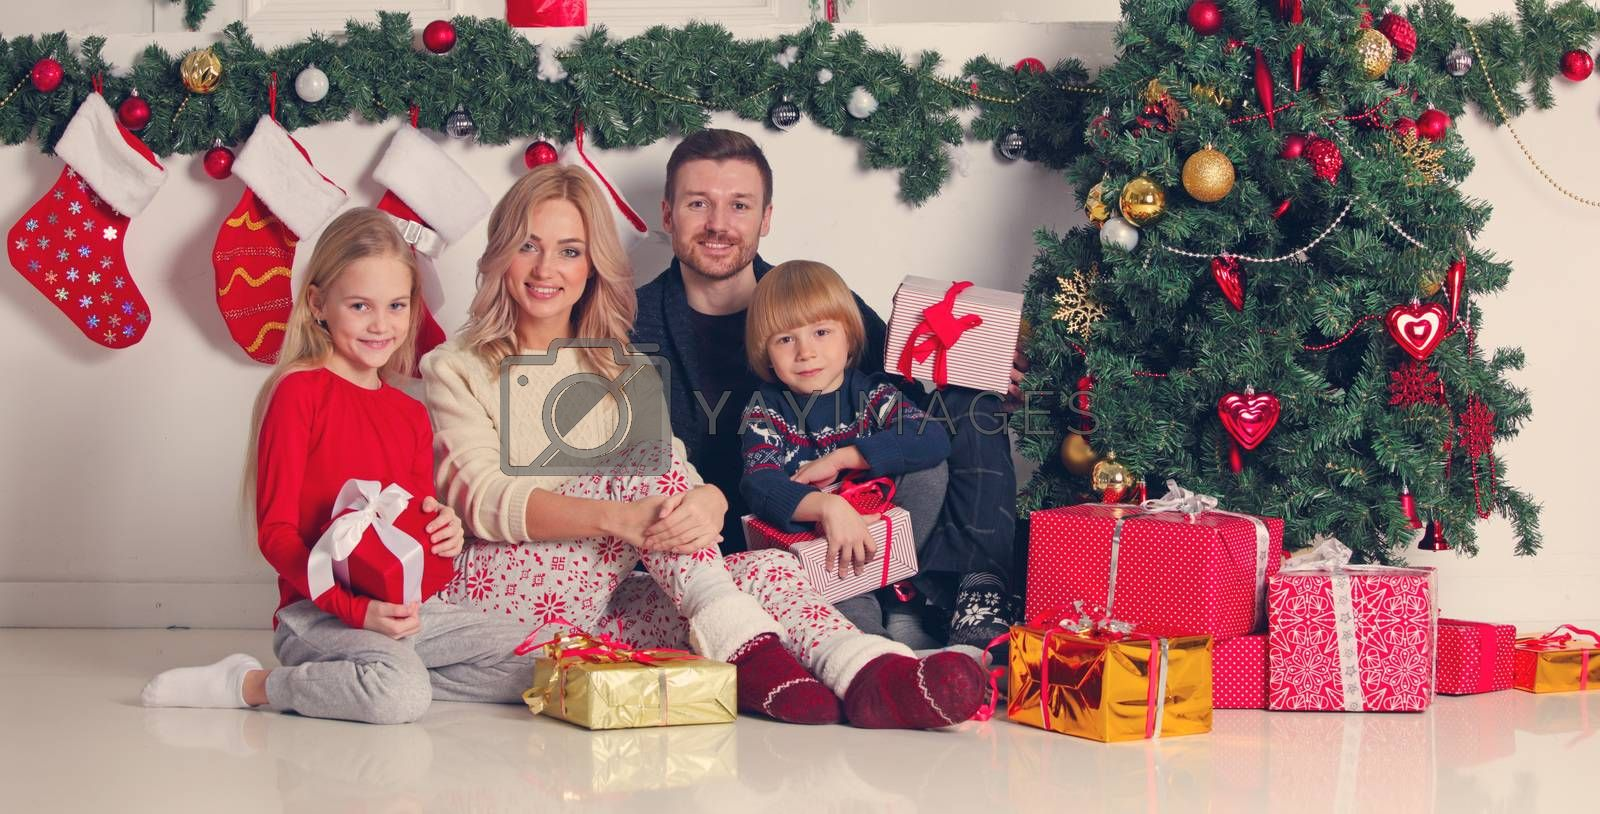 Cheerful family with Christmas gifts sitting near decorated Christmas tree